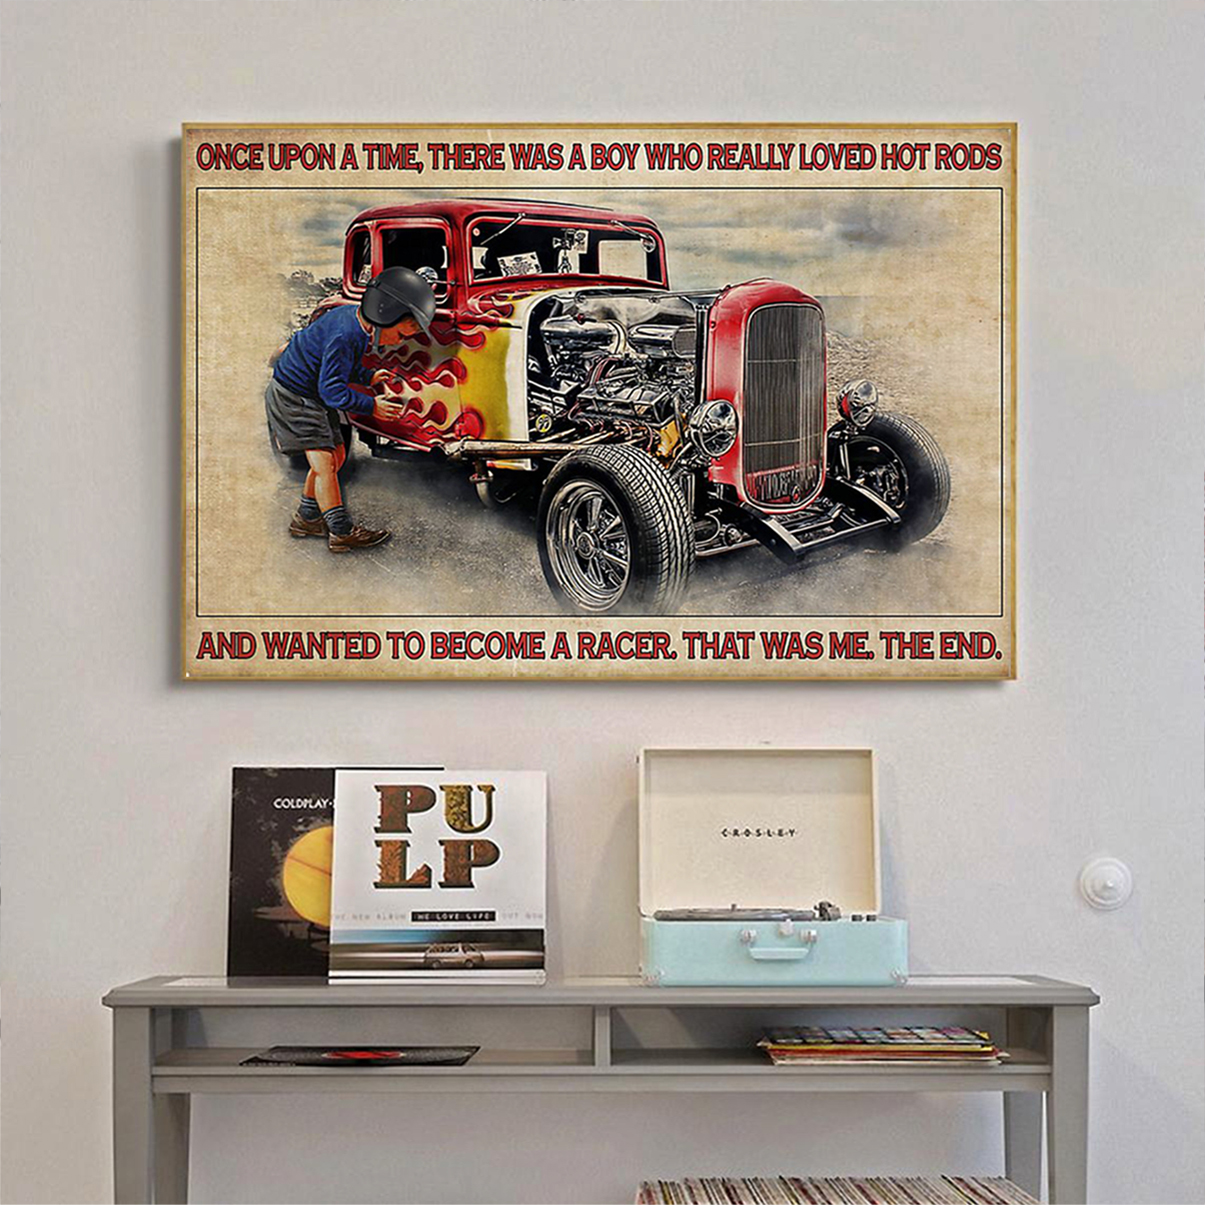 Once upon a time there was a boy who really loved hot rods poster A1